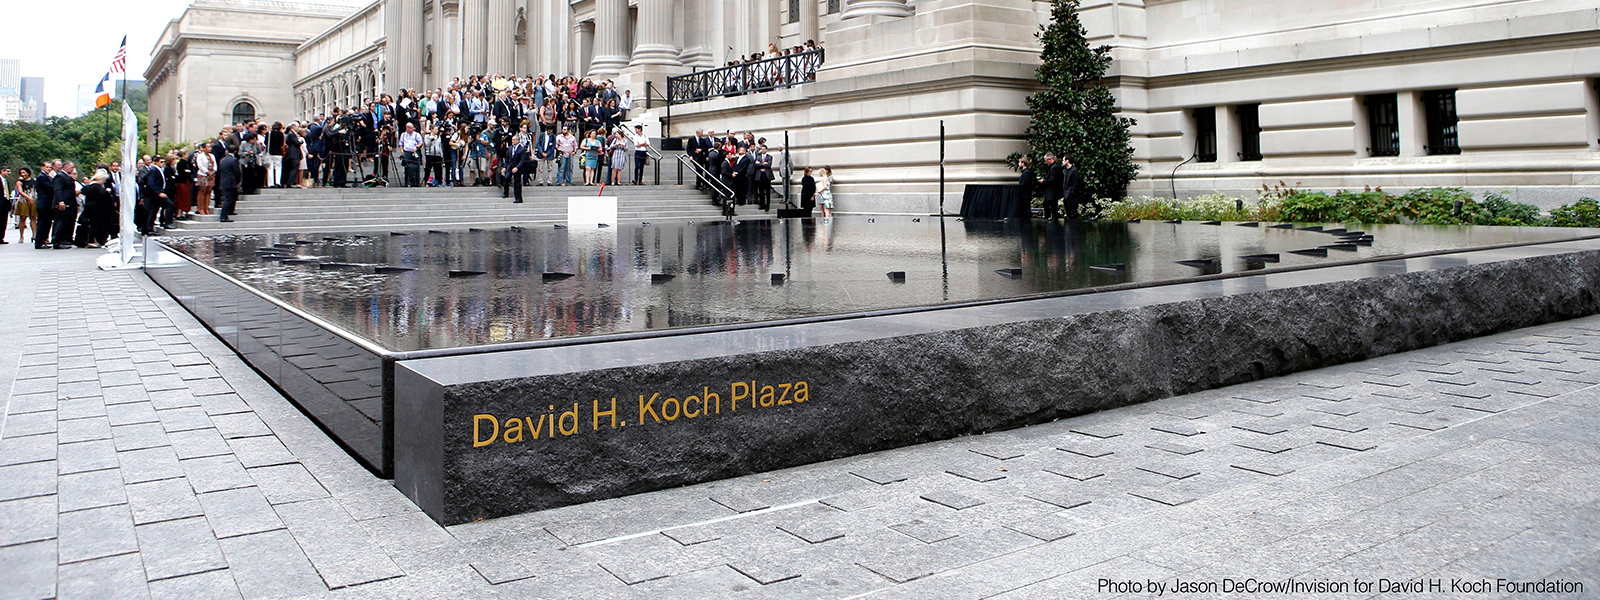 New David H. Koch Plaza at New York's Metropolitan Museum of Art Opens to the Public